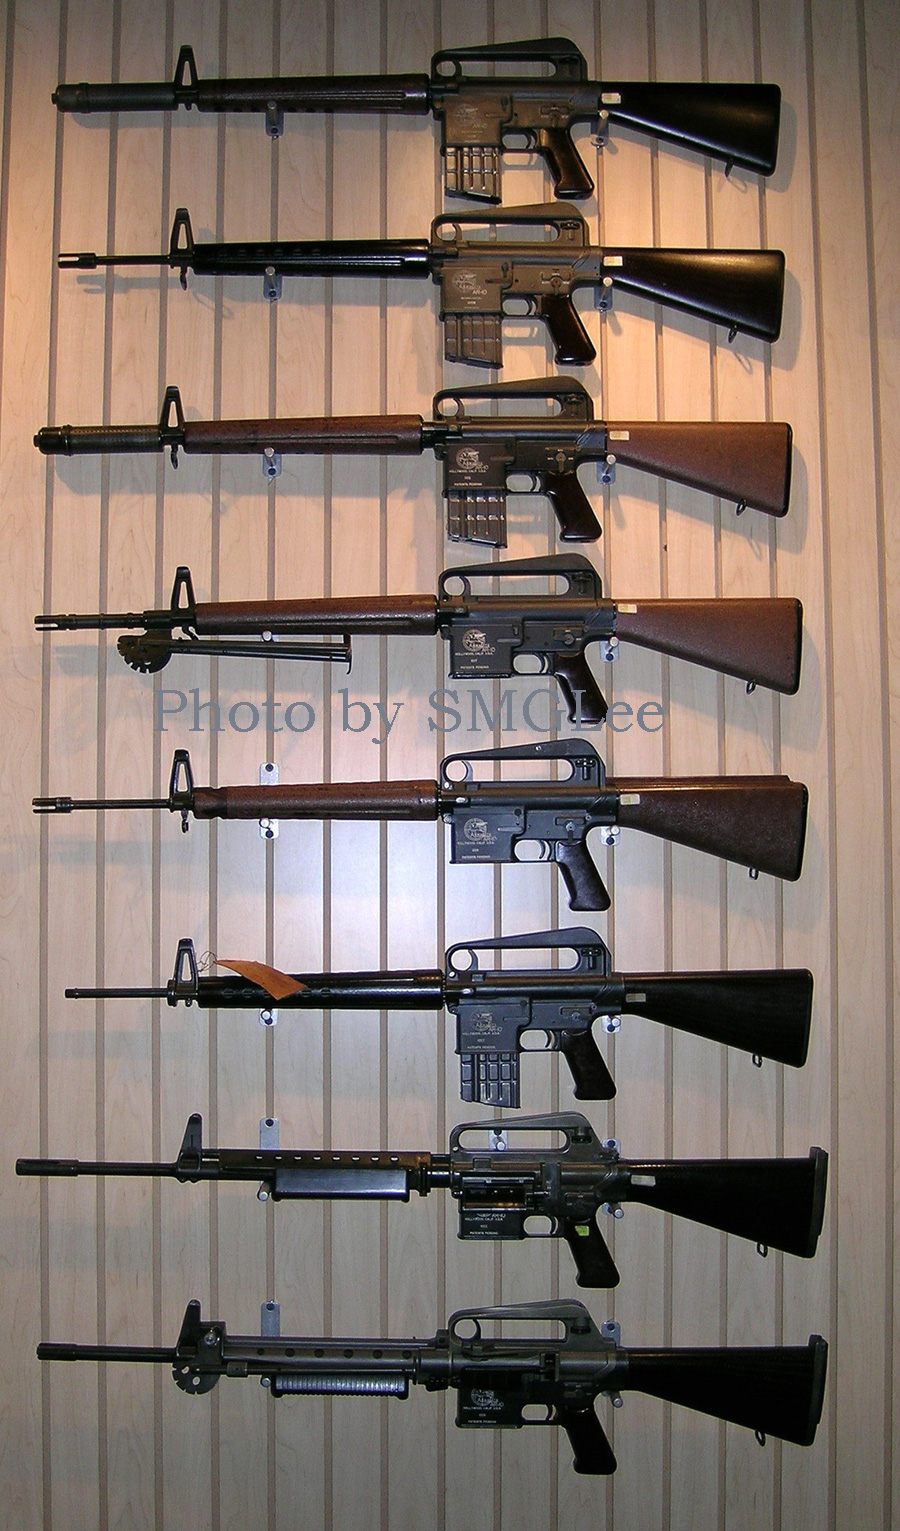 Reed Knight collection - Page 1 - AR15.COM